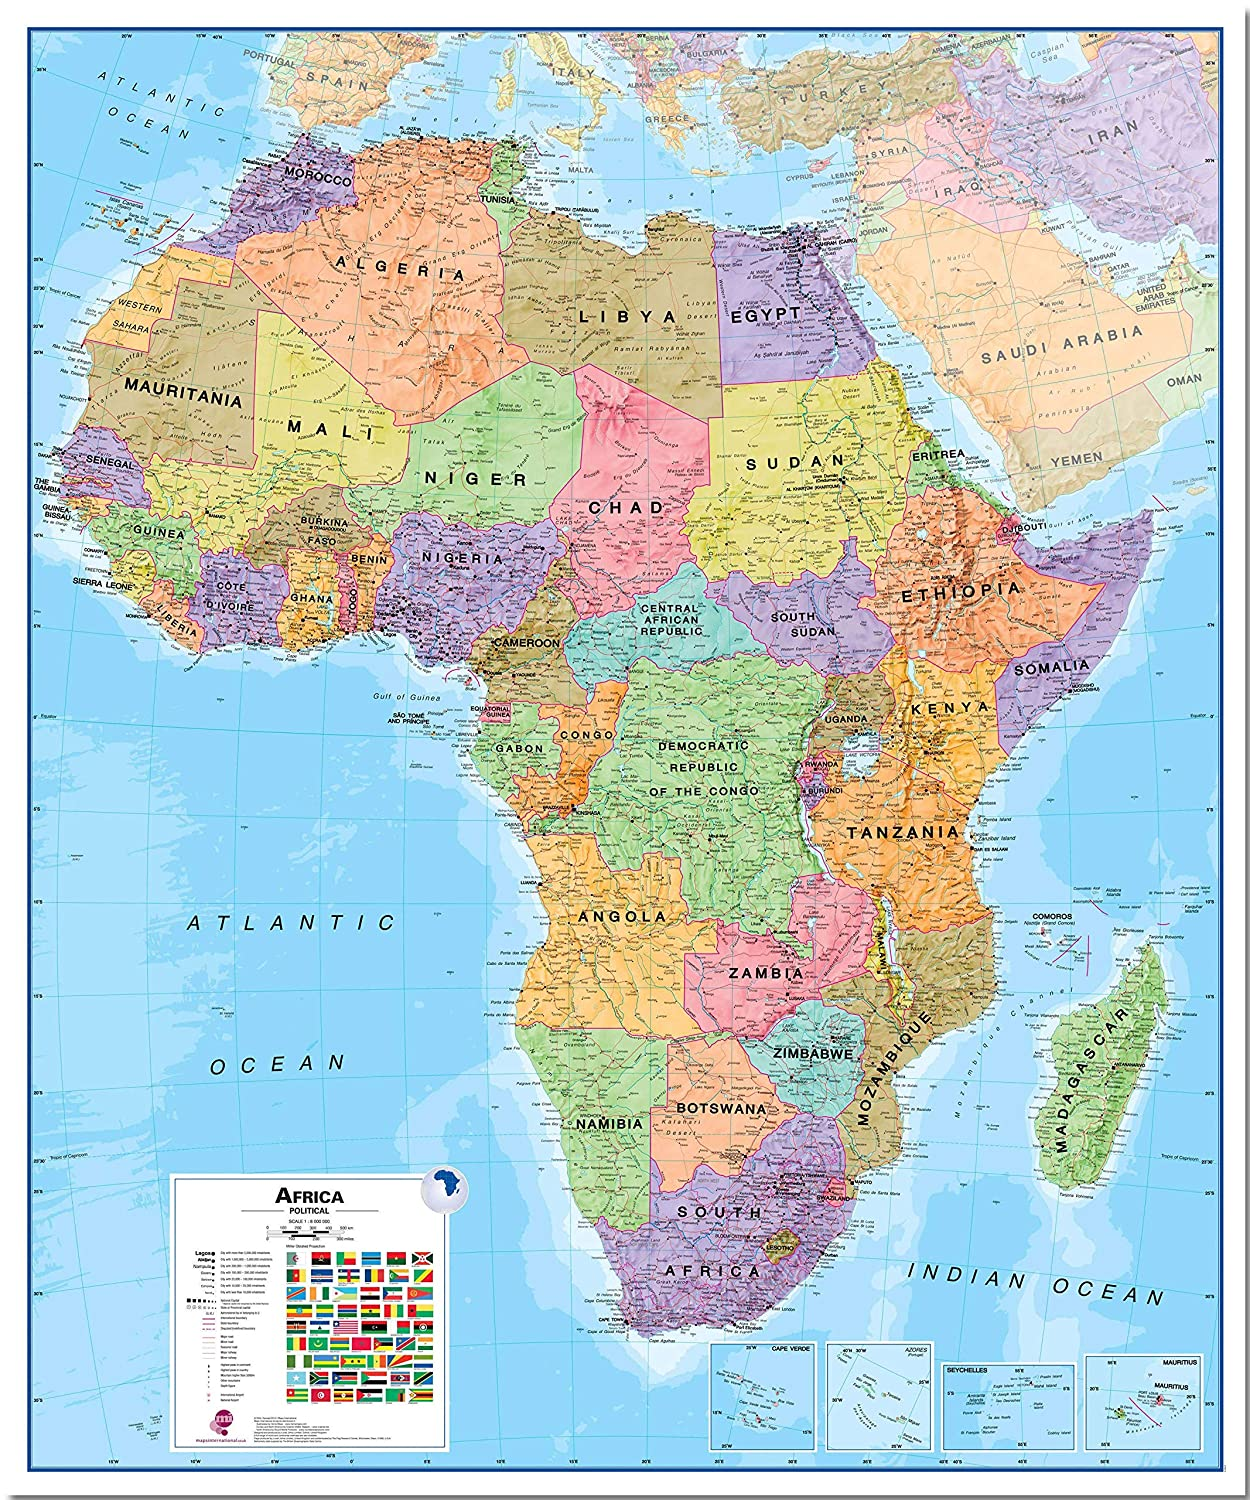 Map Of Africa Madagascar.Maps International Huge Political Africa Wall Map Laminated 46 X 55